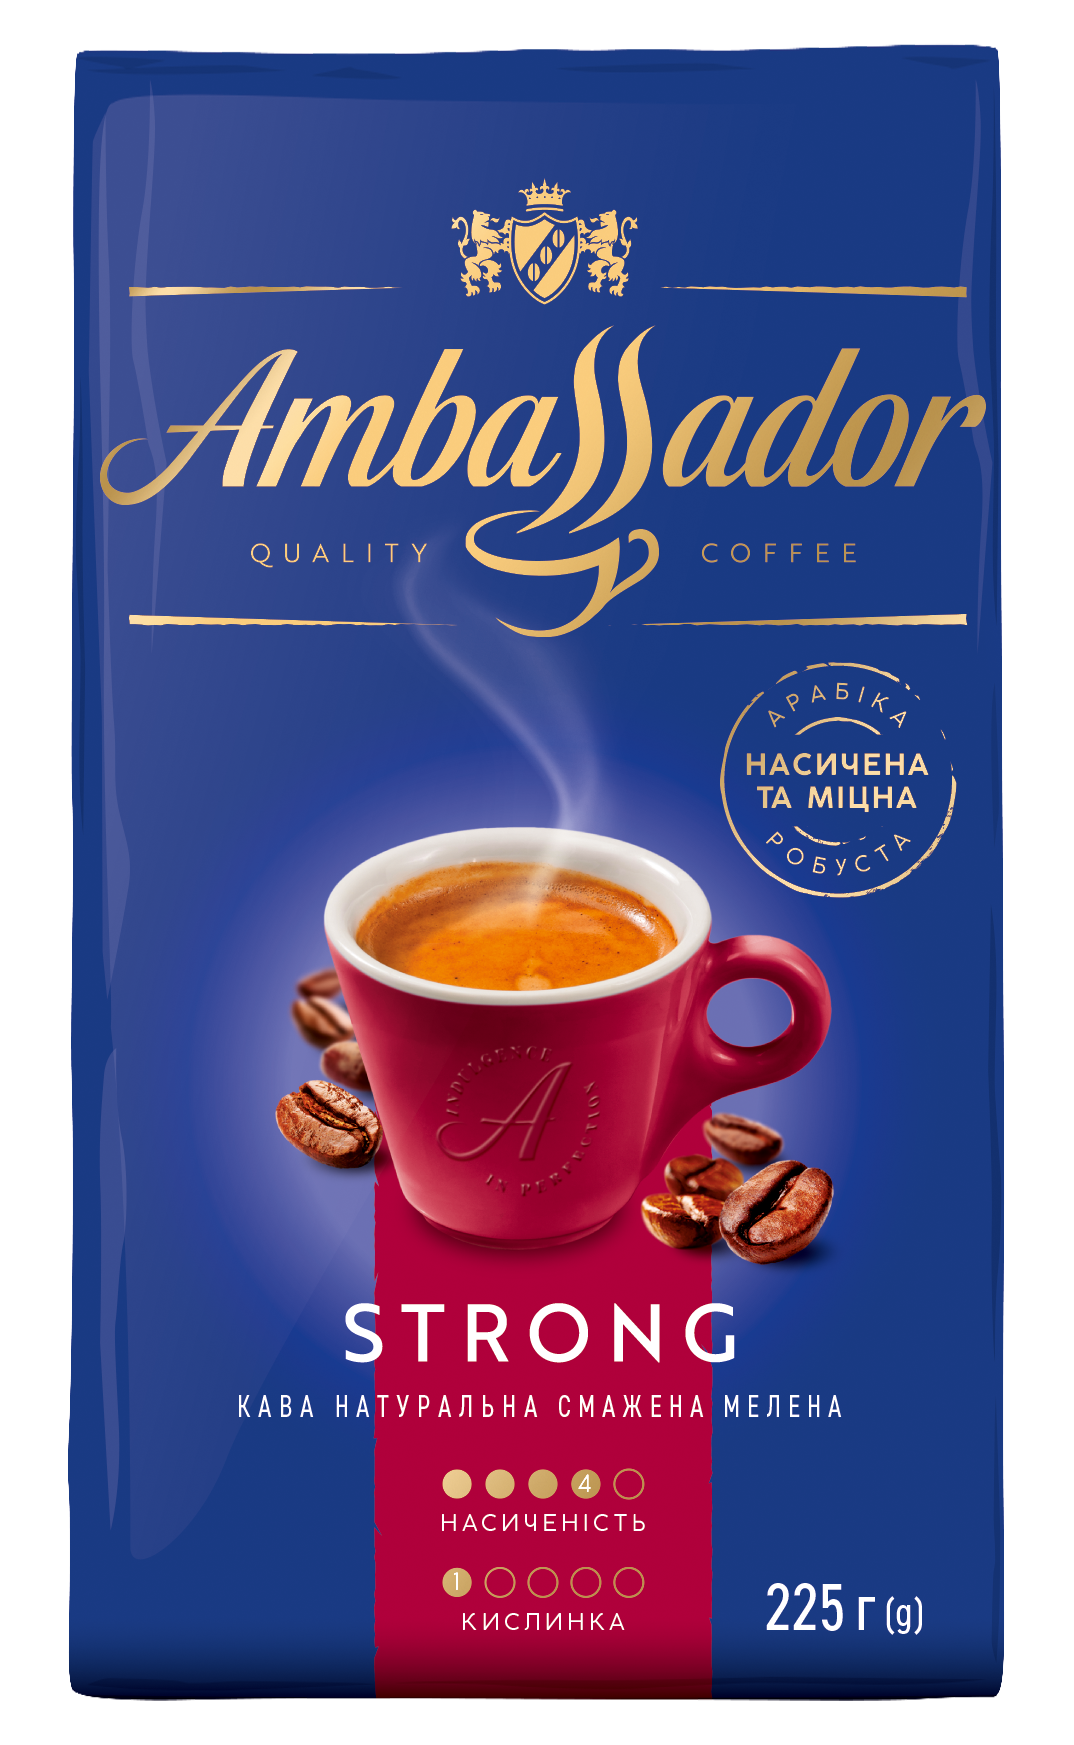 Ambassador Strong 225g ground